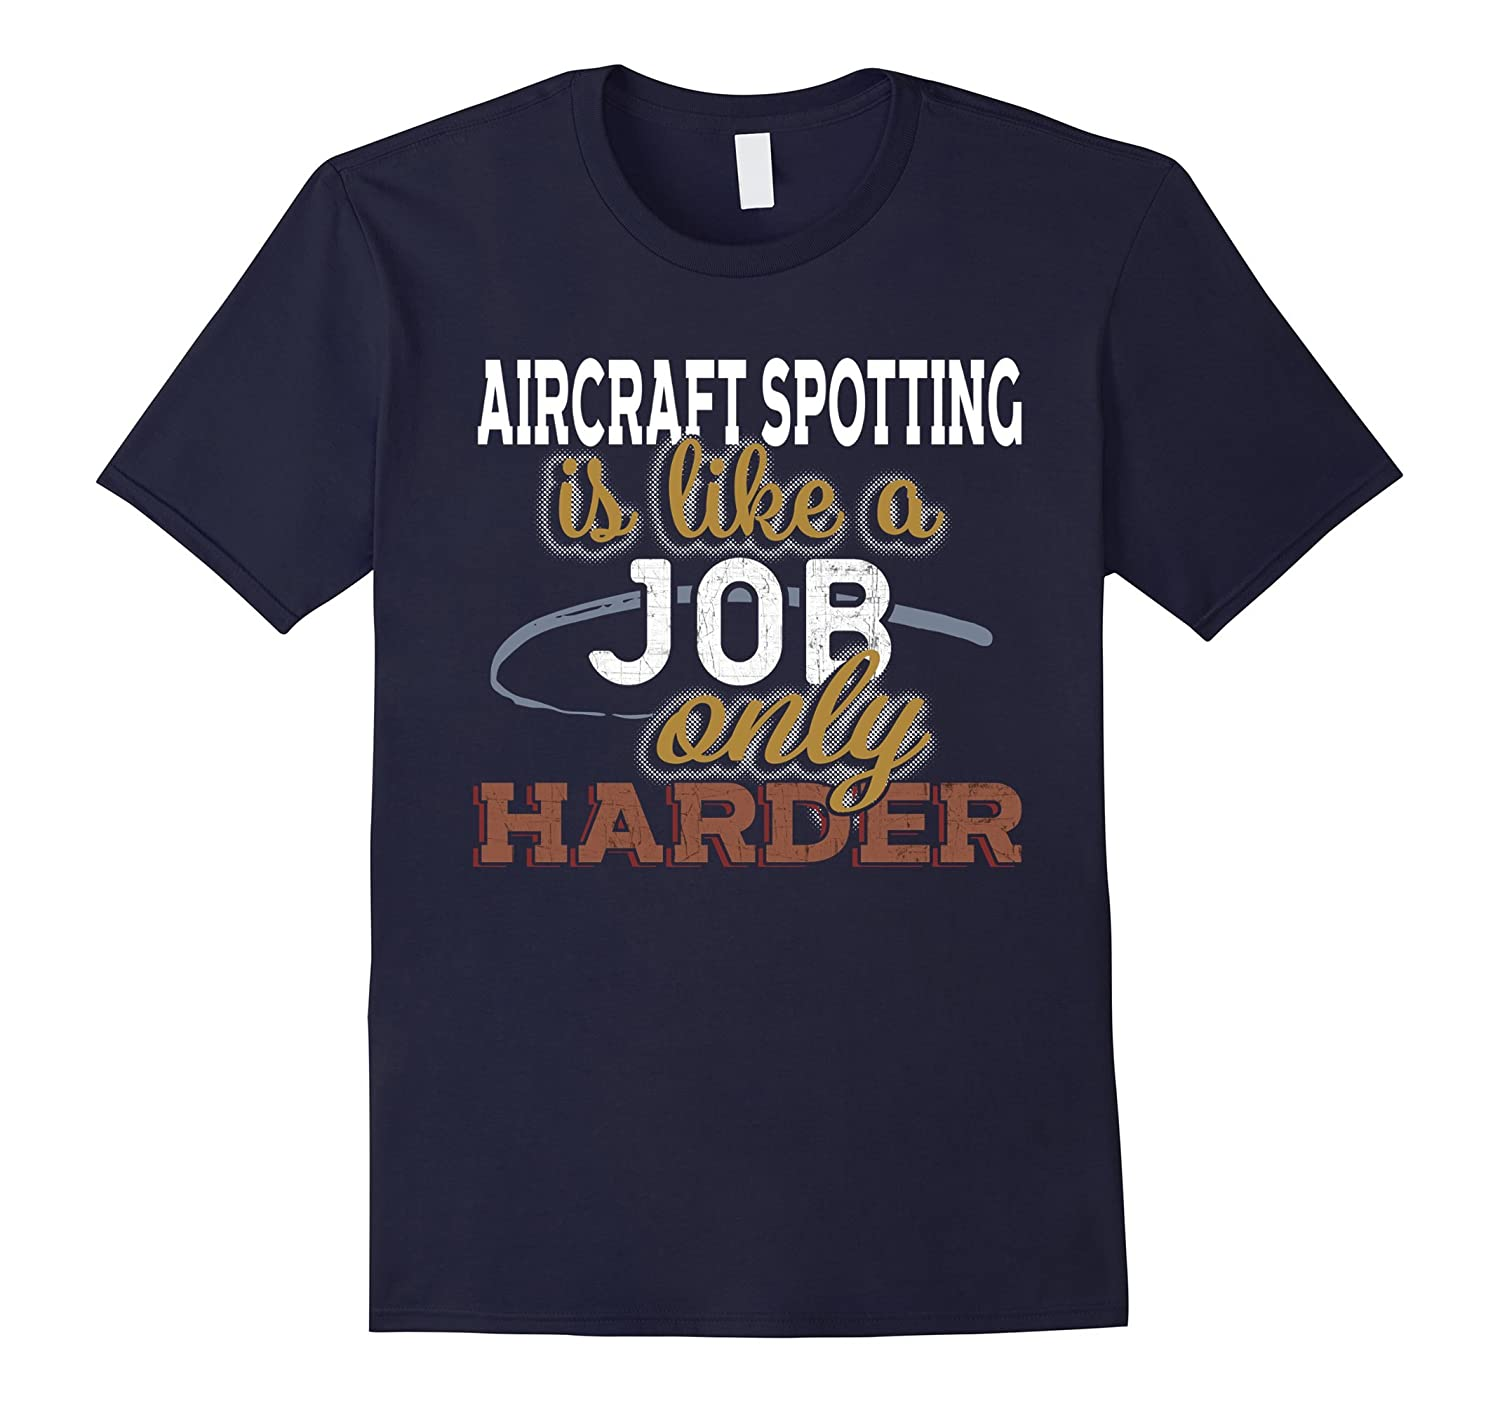 Aircraft Spotting is Just Like a Job Only Harder T Shirt-TJ